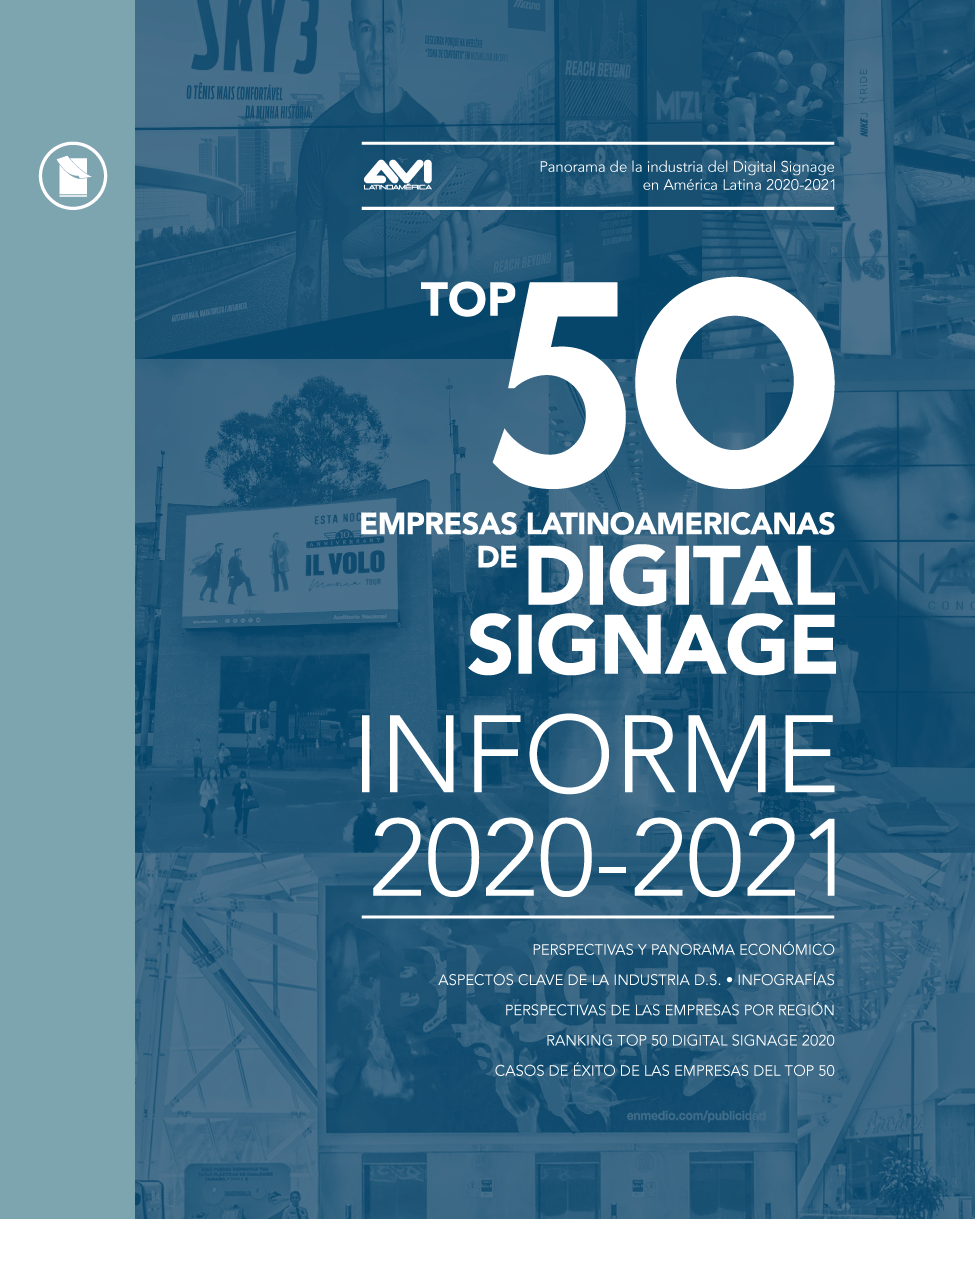 TOP 50 REDES DE DIGITAL SIGNAGE • 2020-2021 Image